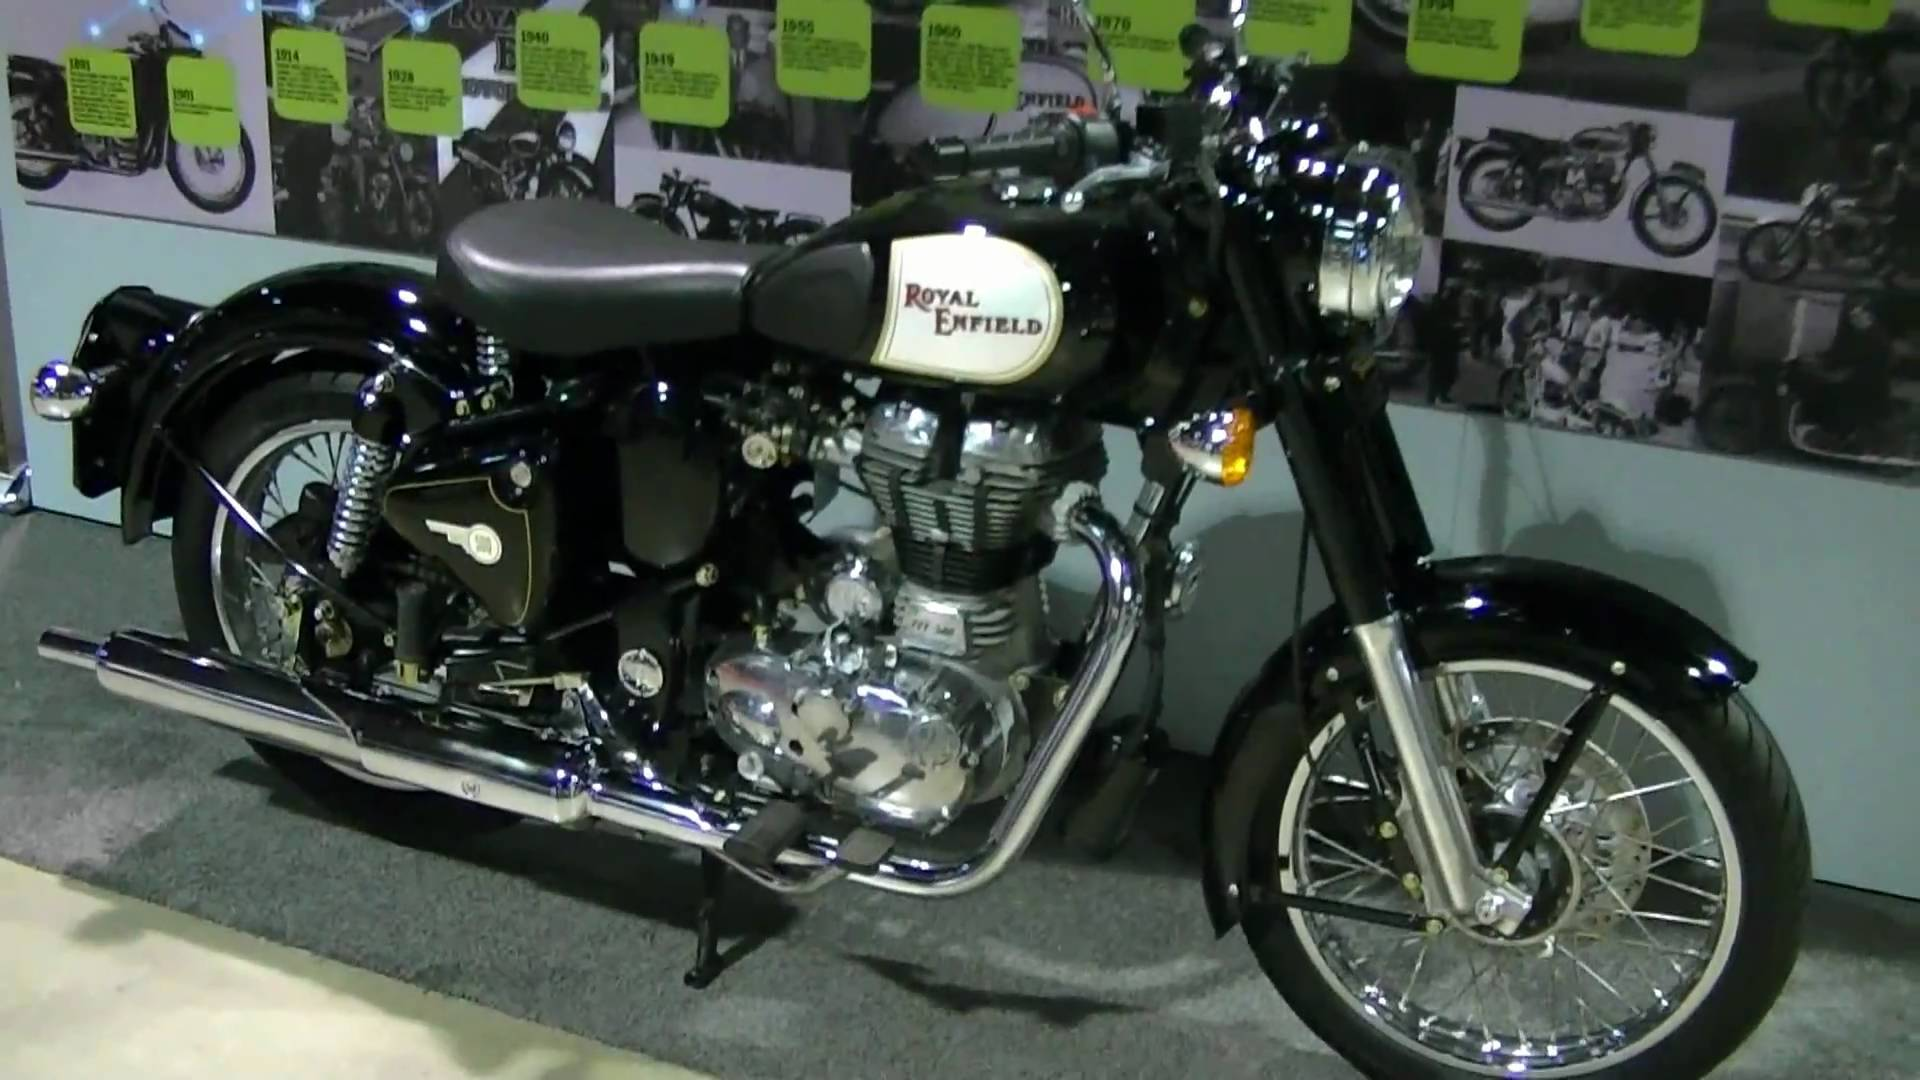 Royal Enfield Bullet 500 Army 1997 images #158642